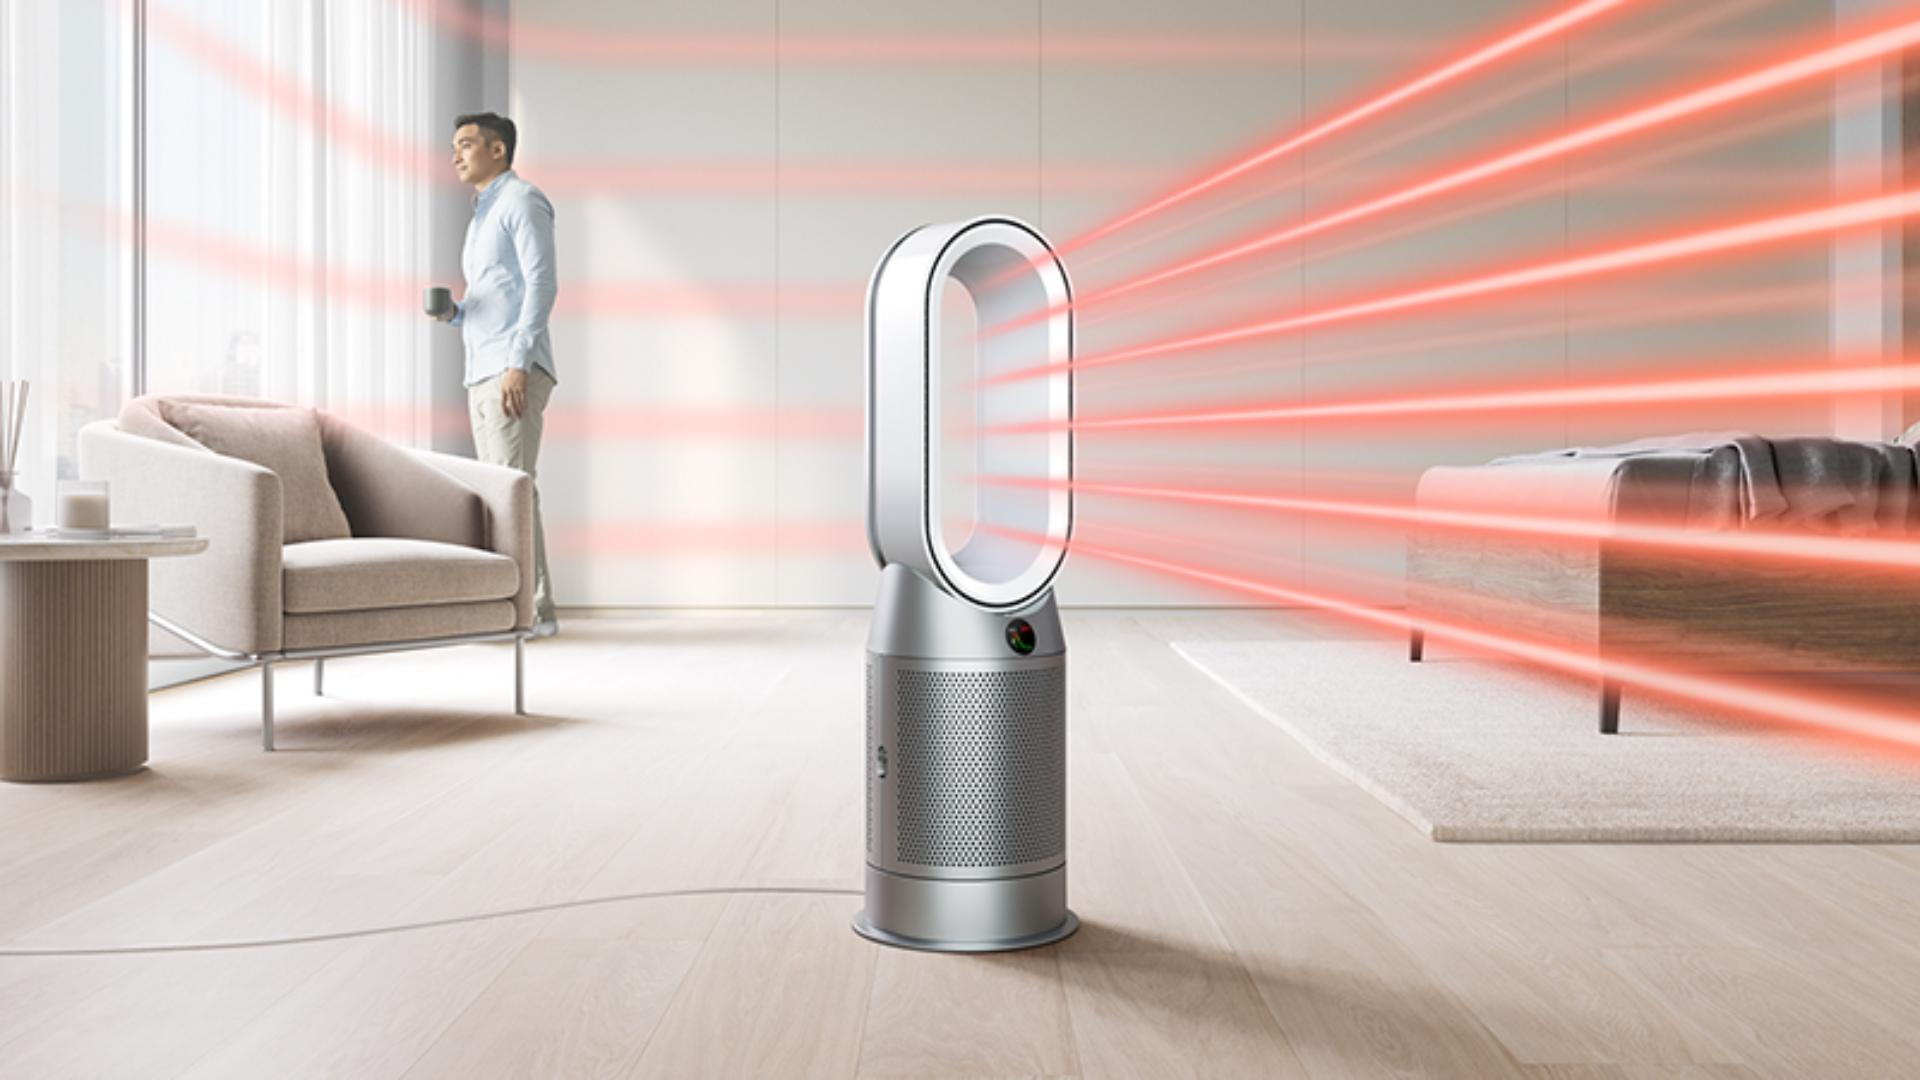 The best air purifier with air multiplier and 350° oscillation